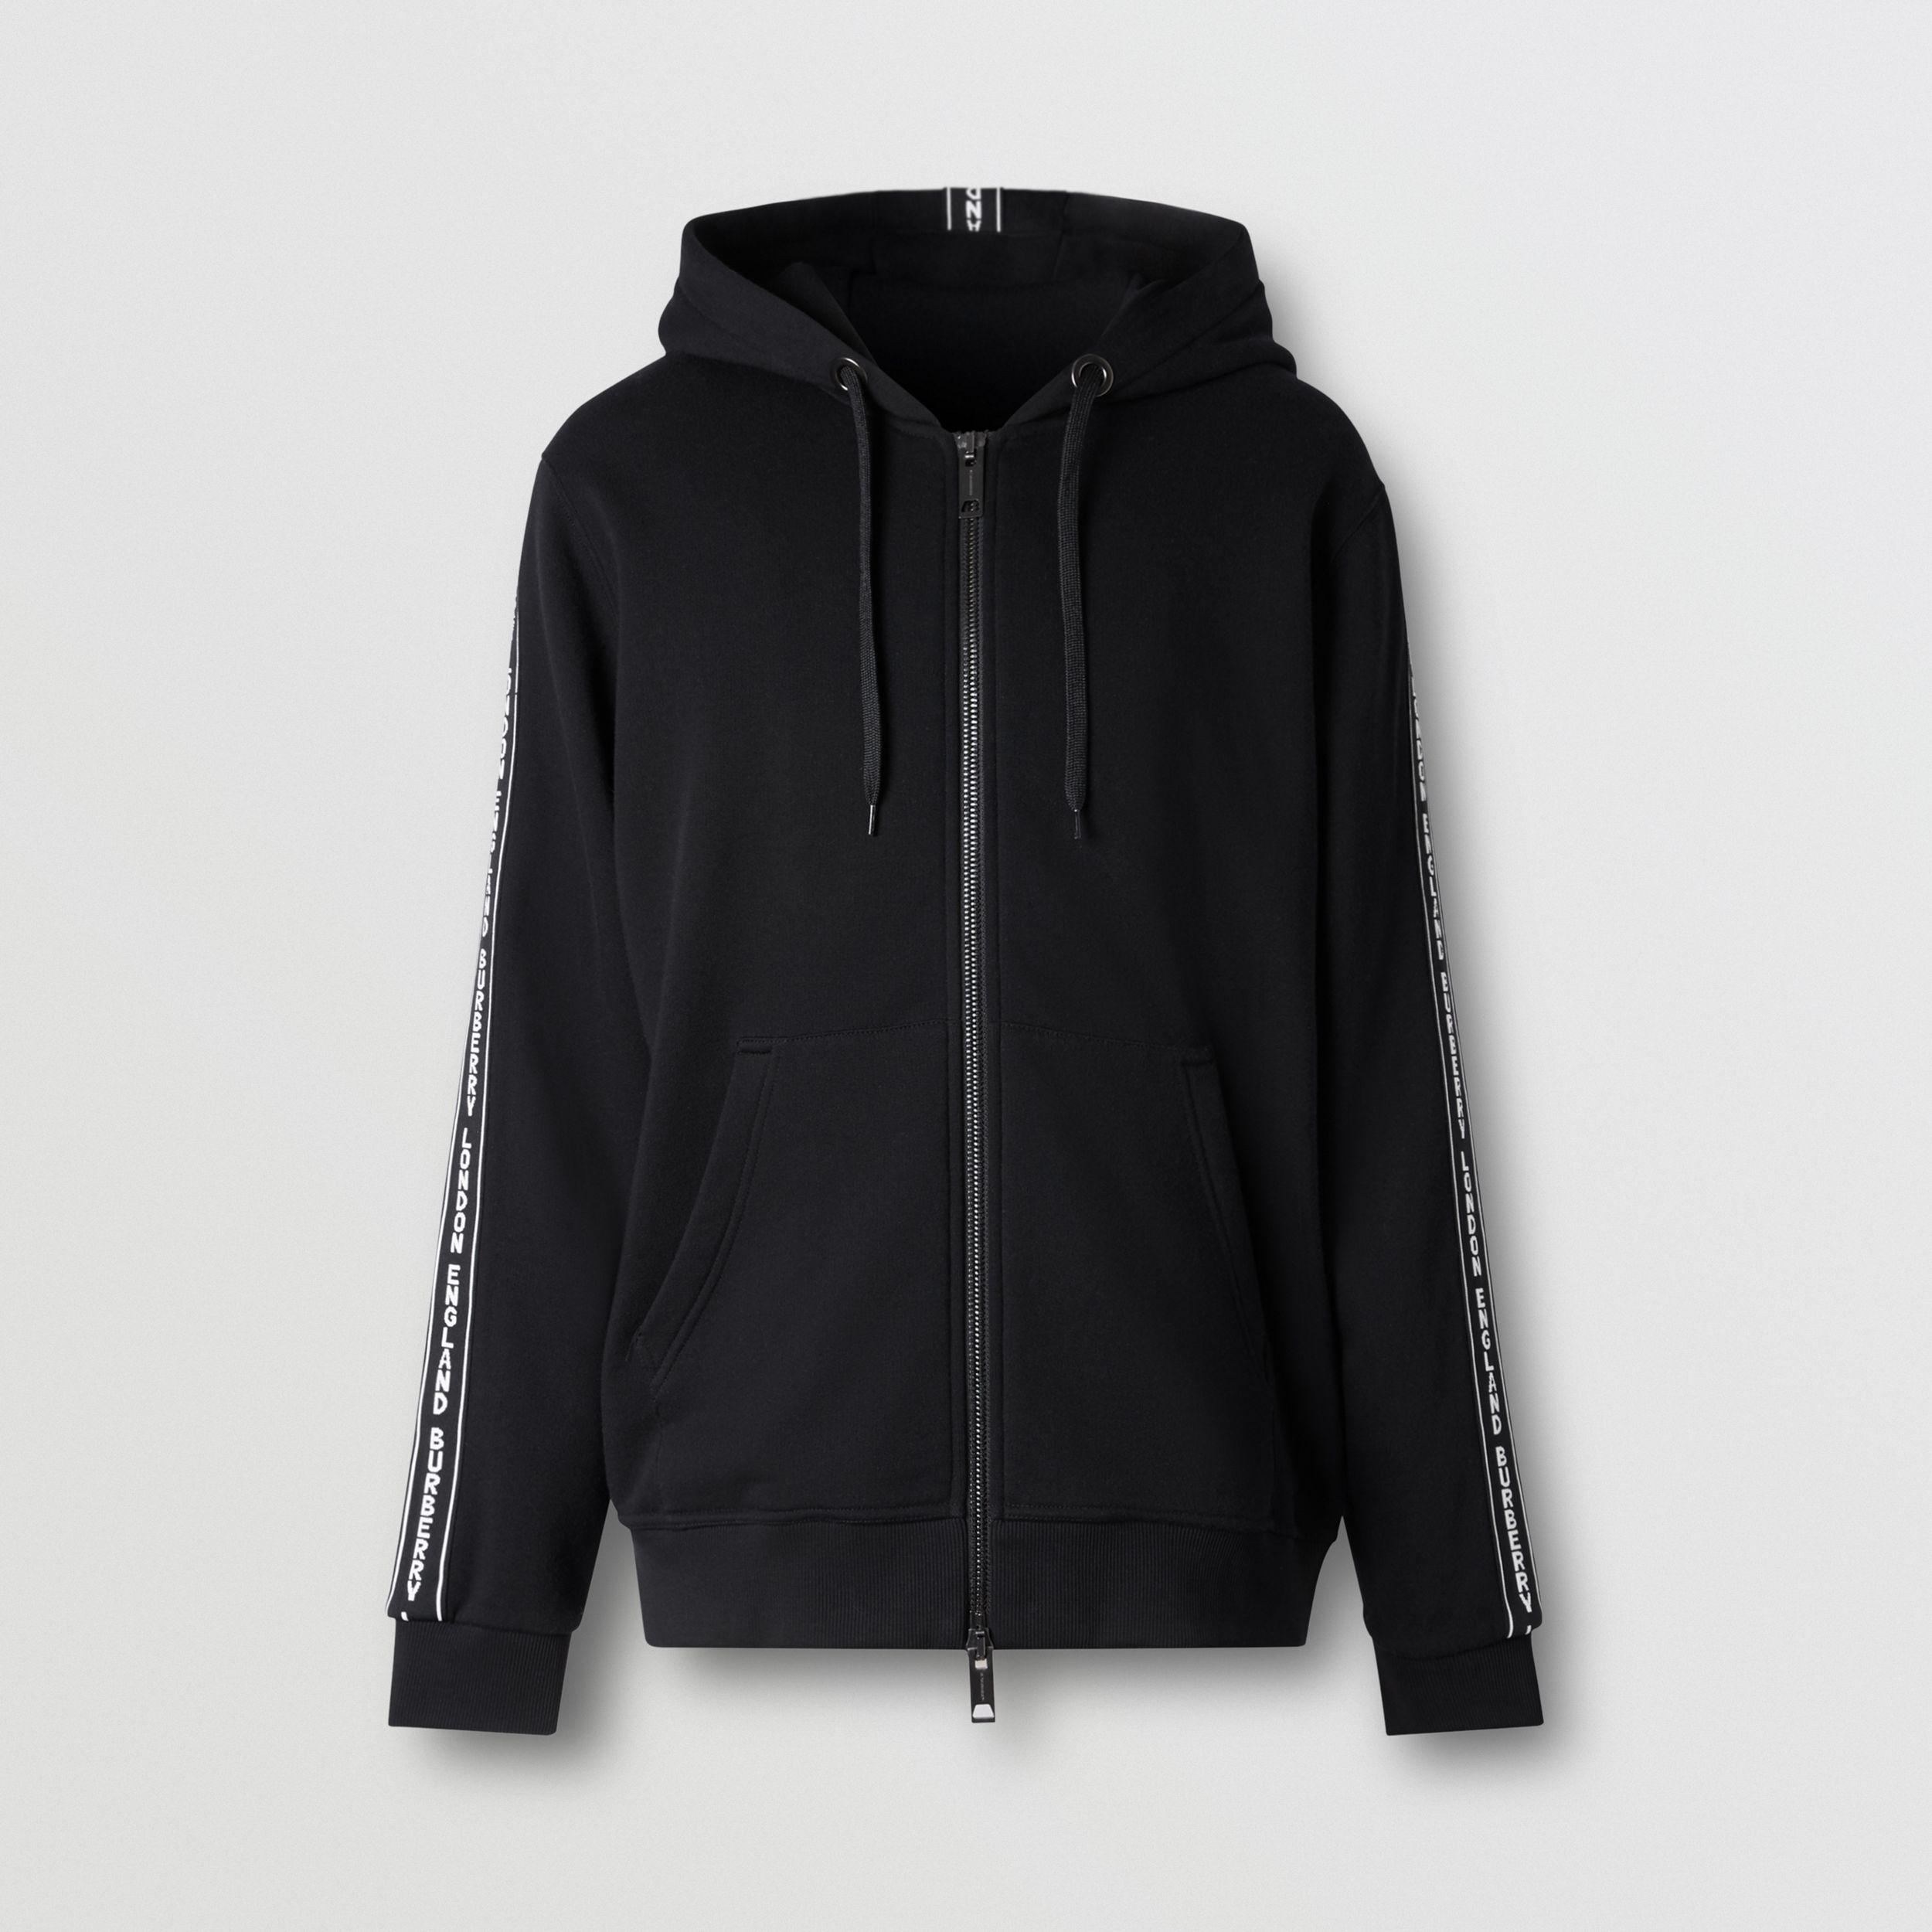 Logo Tape Cotton Hooded Top in Black - Men | Burberry - 4